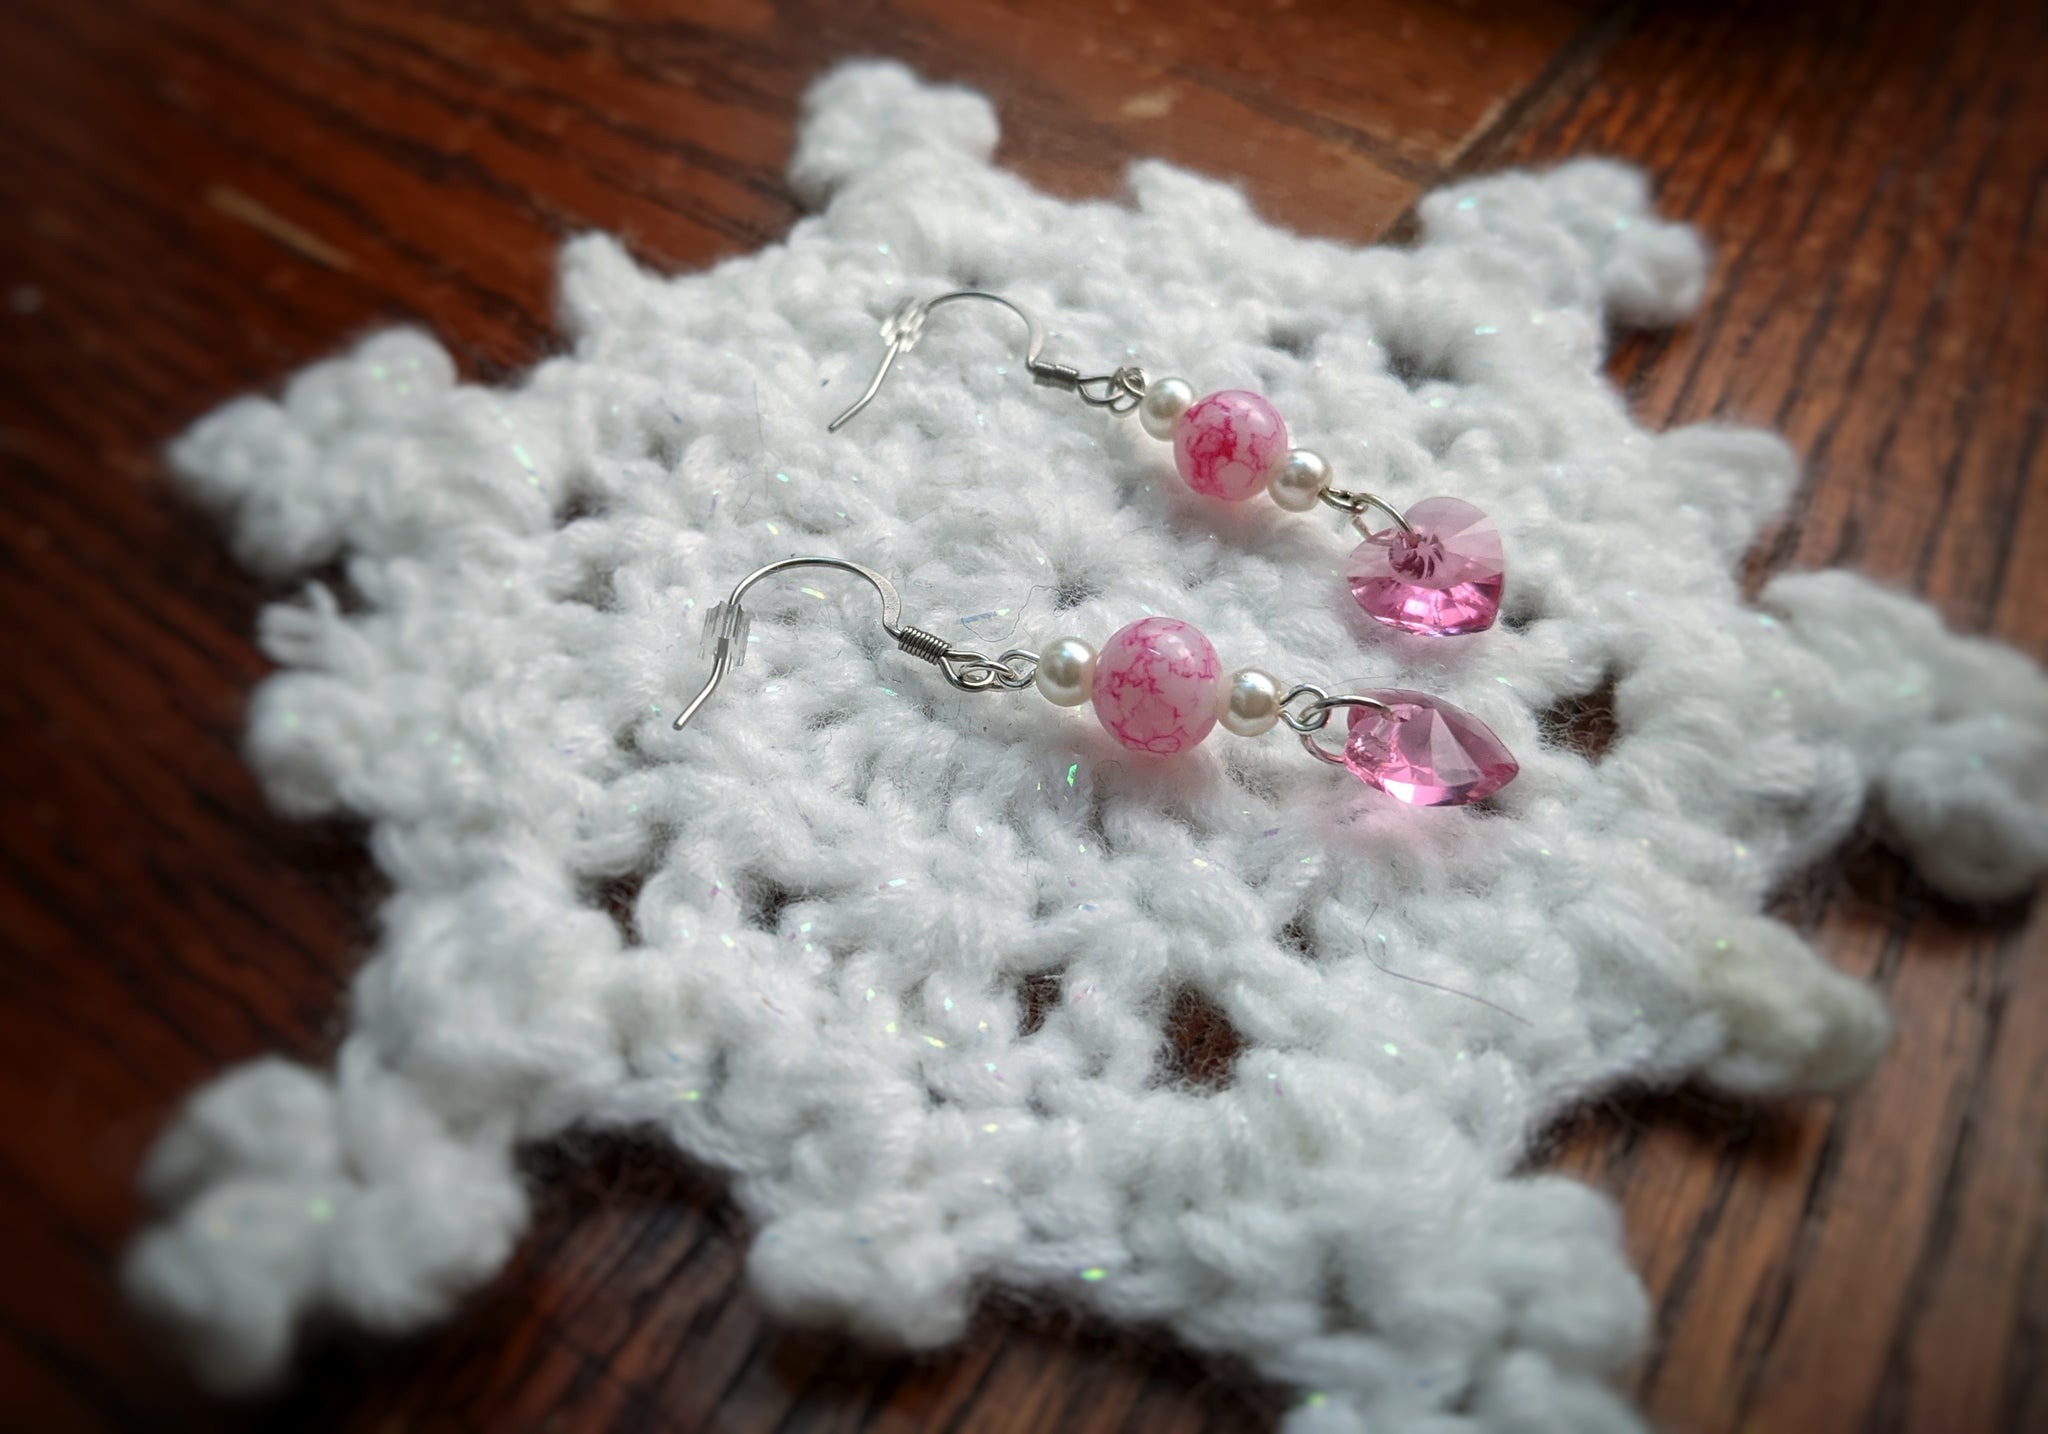 Dangling silver earrings feature pink marbled glass beads, white glass pearls, and pink crystal hearts.